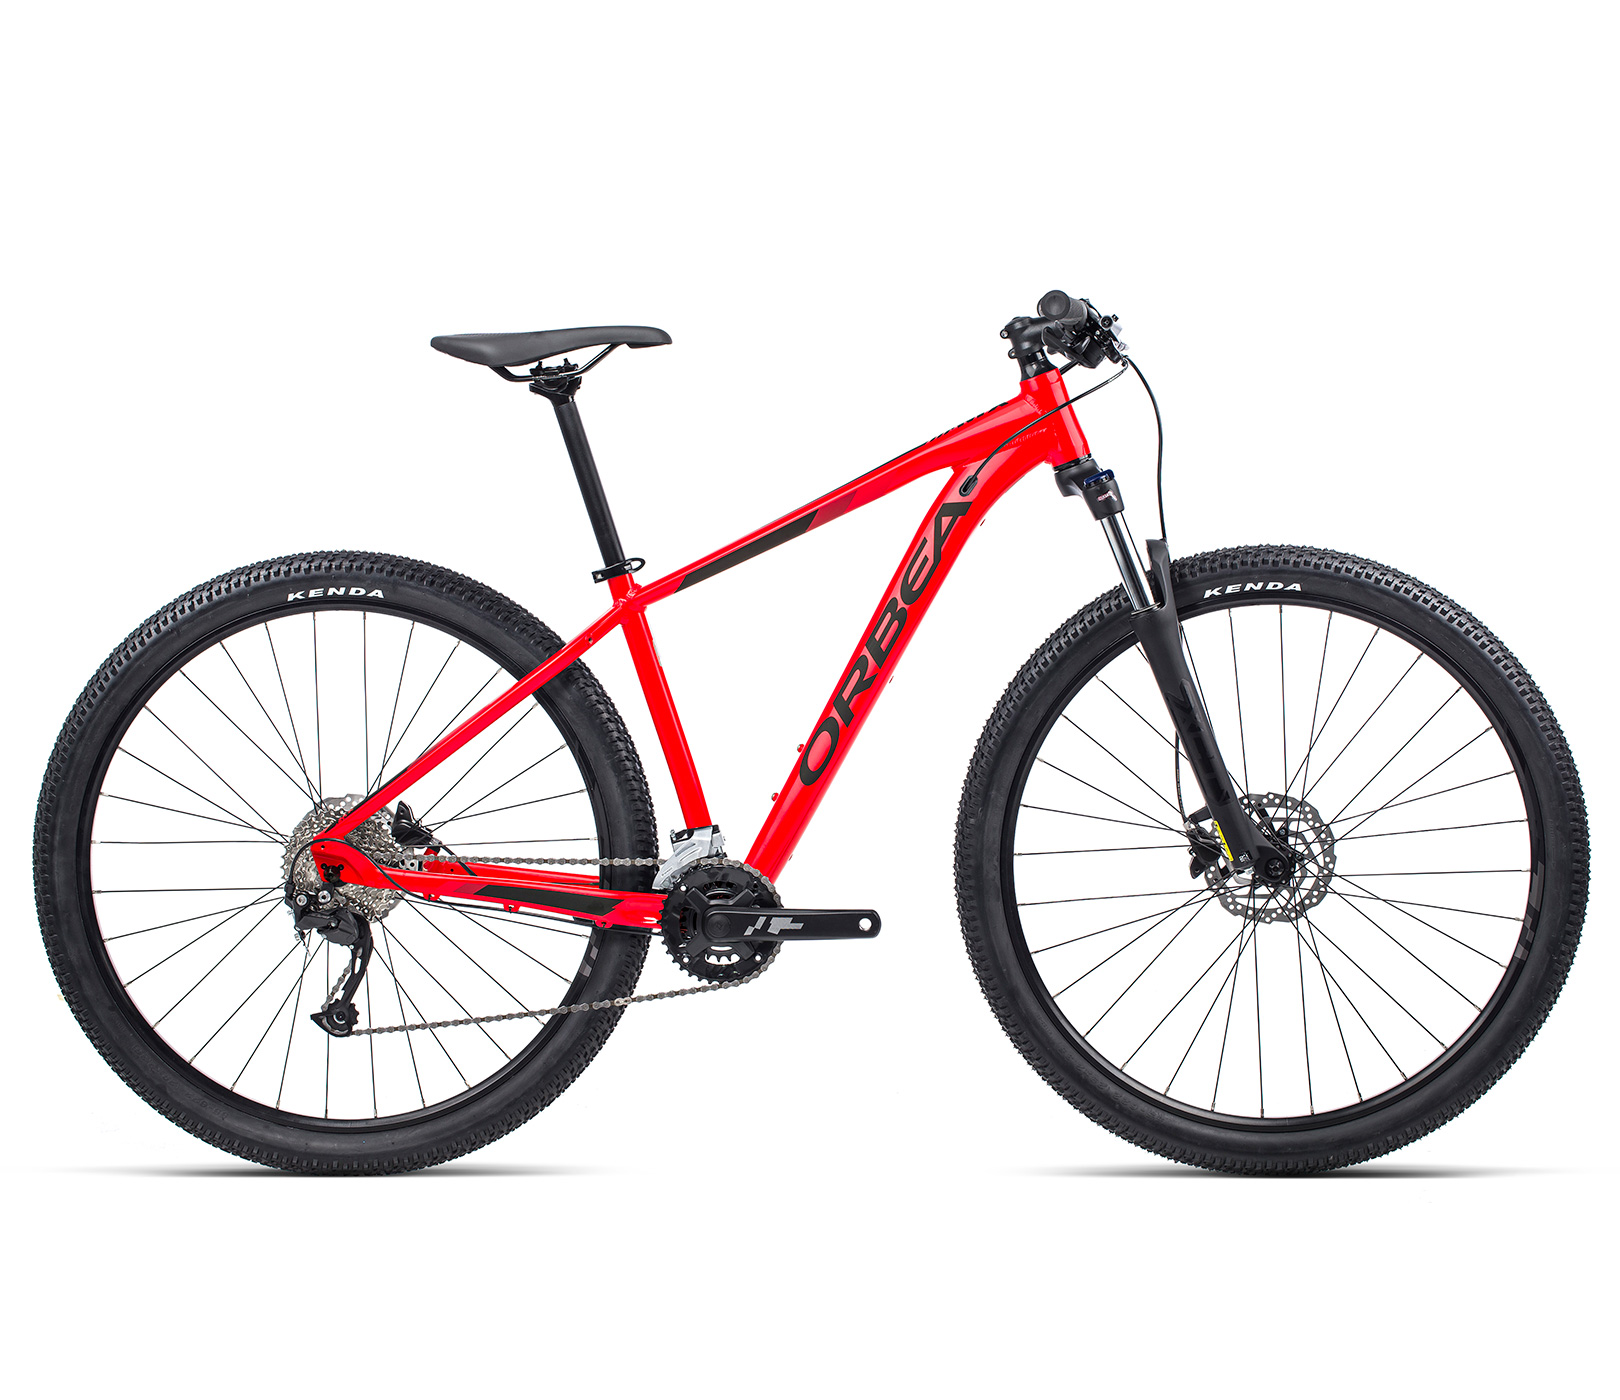 Orbea Mx 40 27.5 Mountain Bike 2021 Red/black